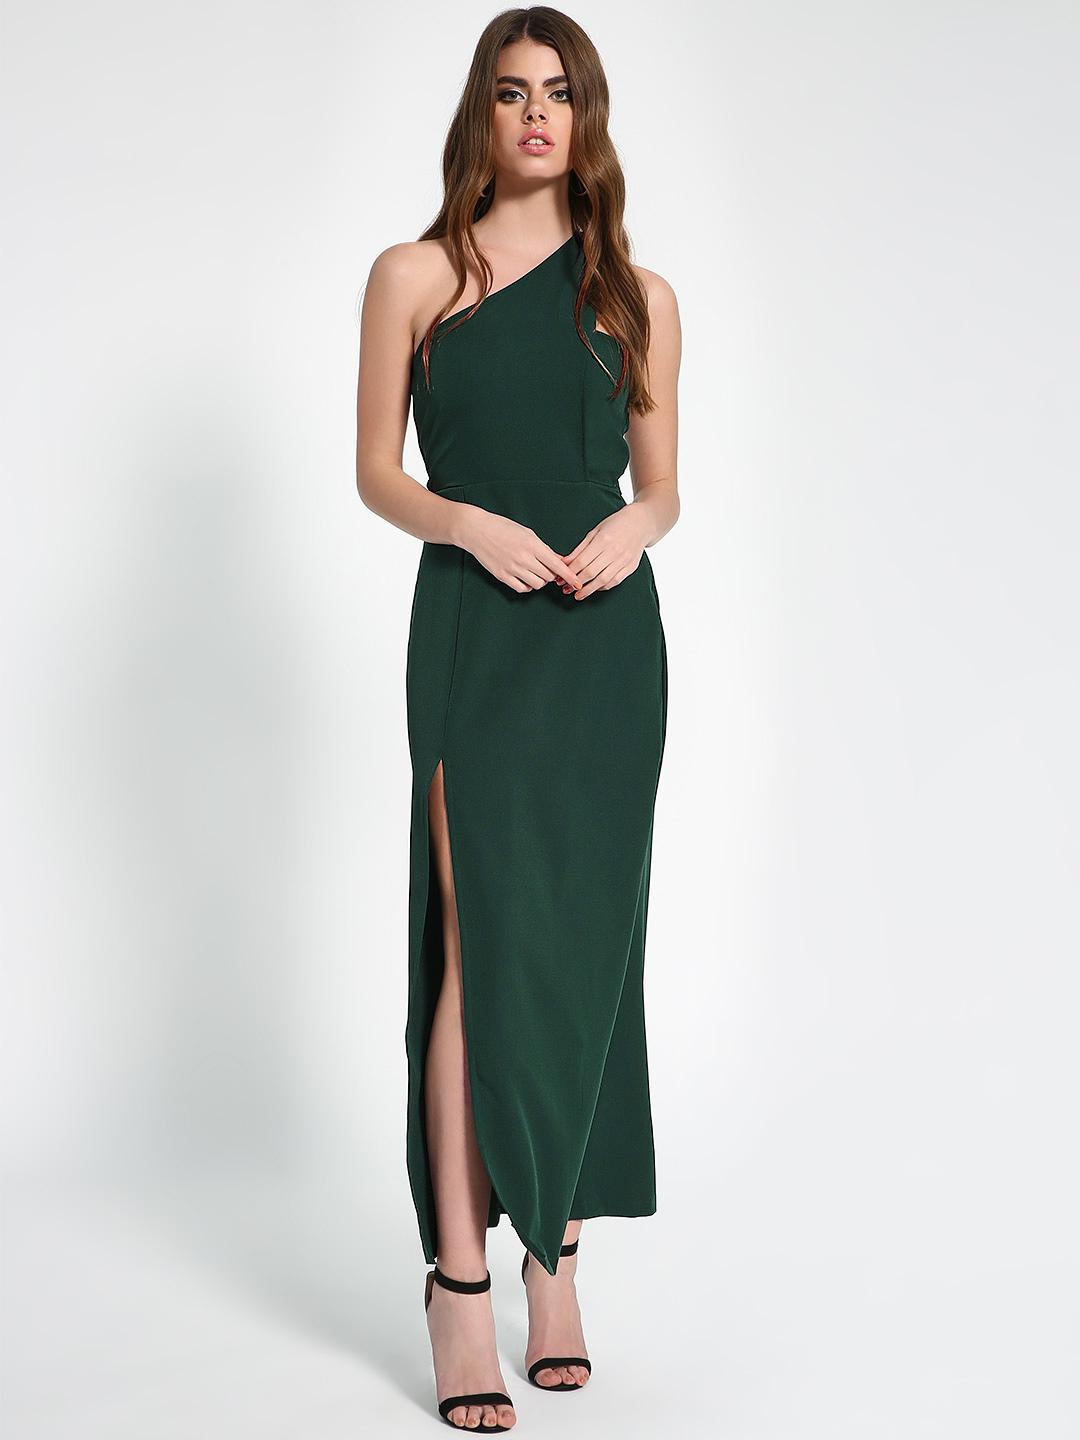 KOOVS DK GREEN Front Slit Maxi Dress 1